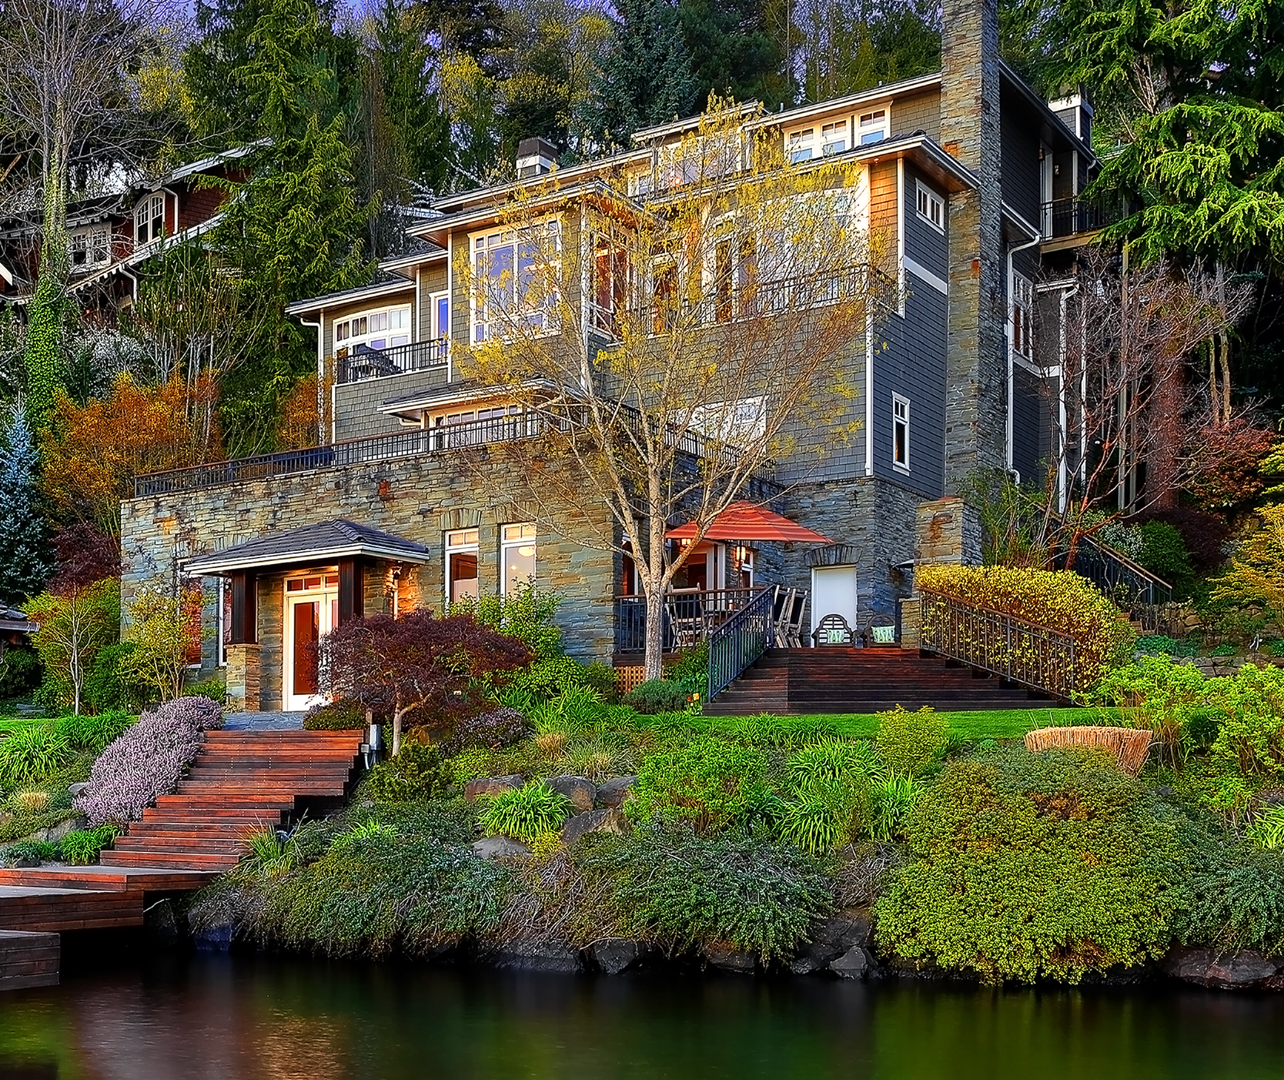 Photo of lake front PNW home by Seattle Residential Architect